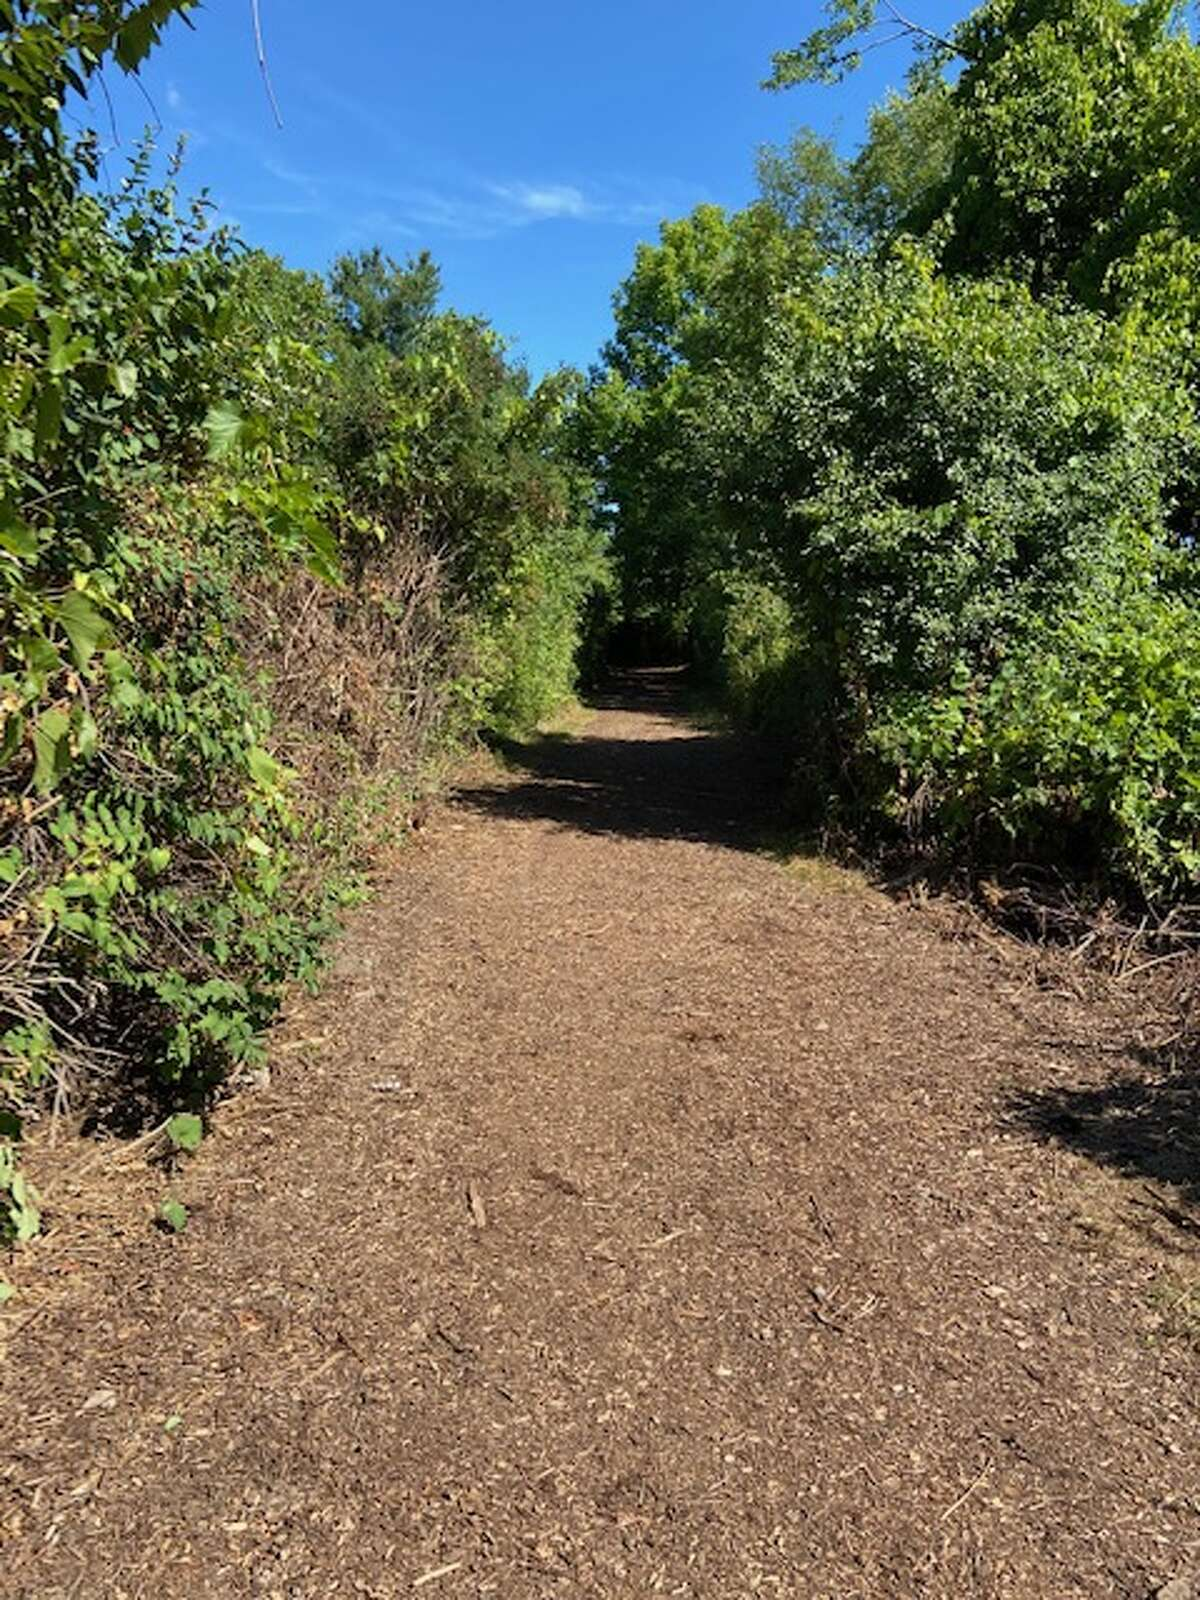 Community Partners of Greenville, Iroquois Gas Transmission System and the town of Greenville recently completed improvements to the Vanderbilt Park trail system. (Provided photo)